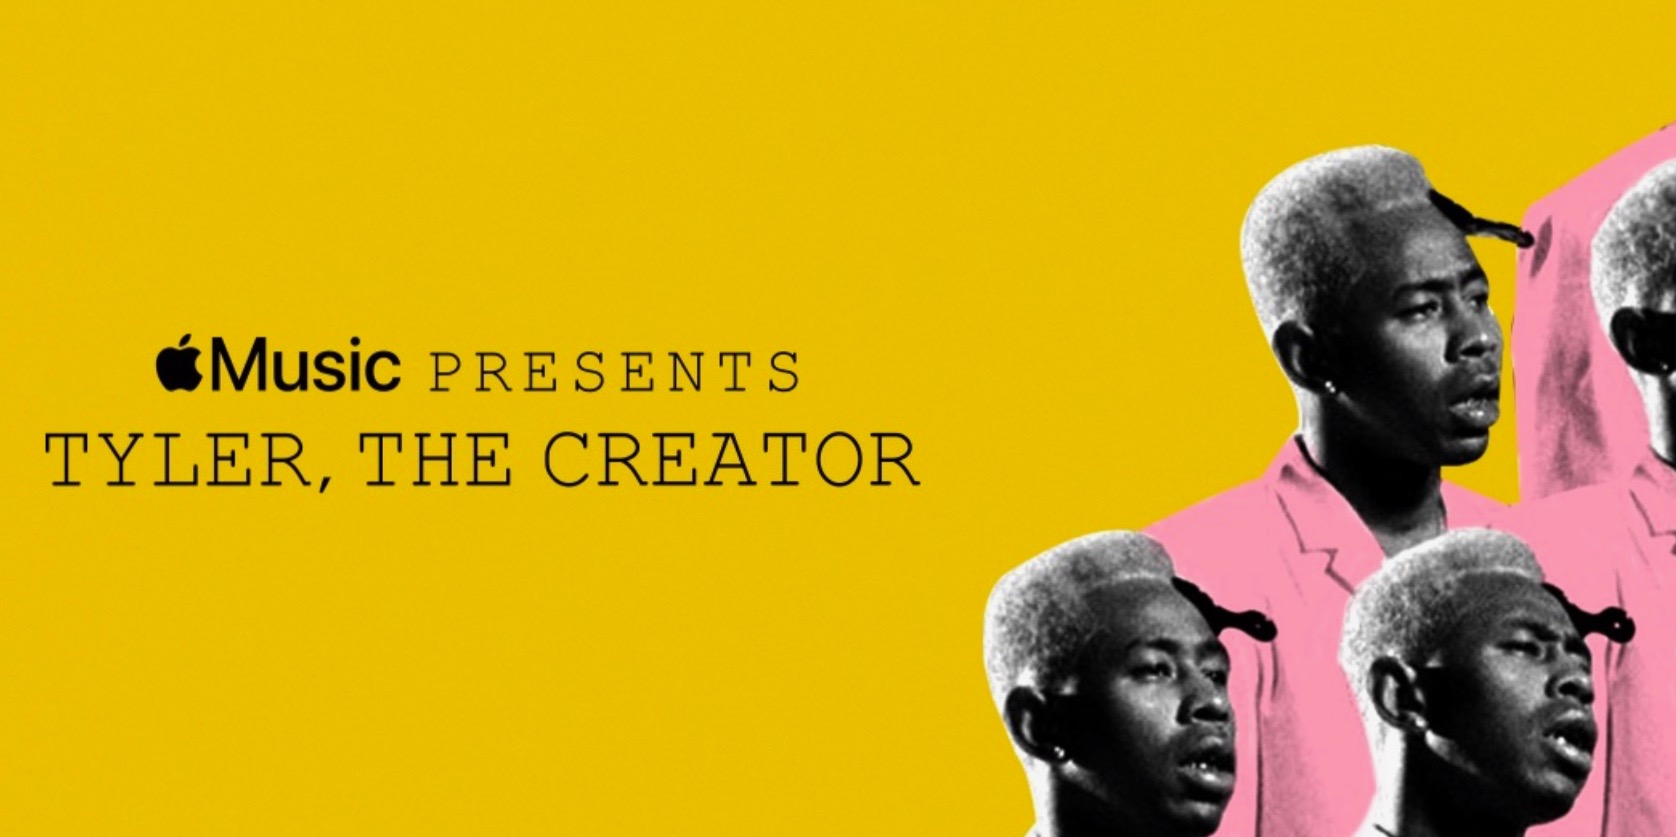 Apple Music hosting Tyler The Creator concert next week in LA, apply now for your free tickets